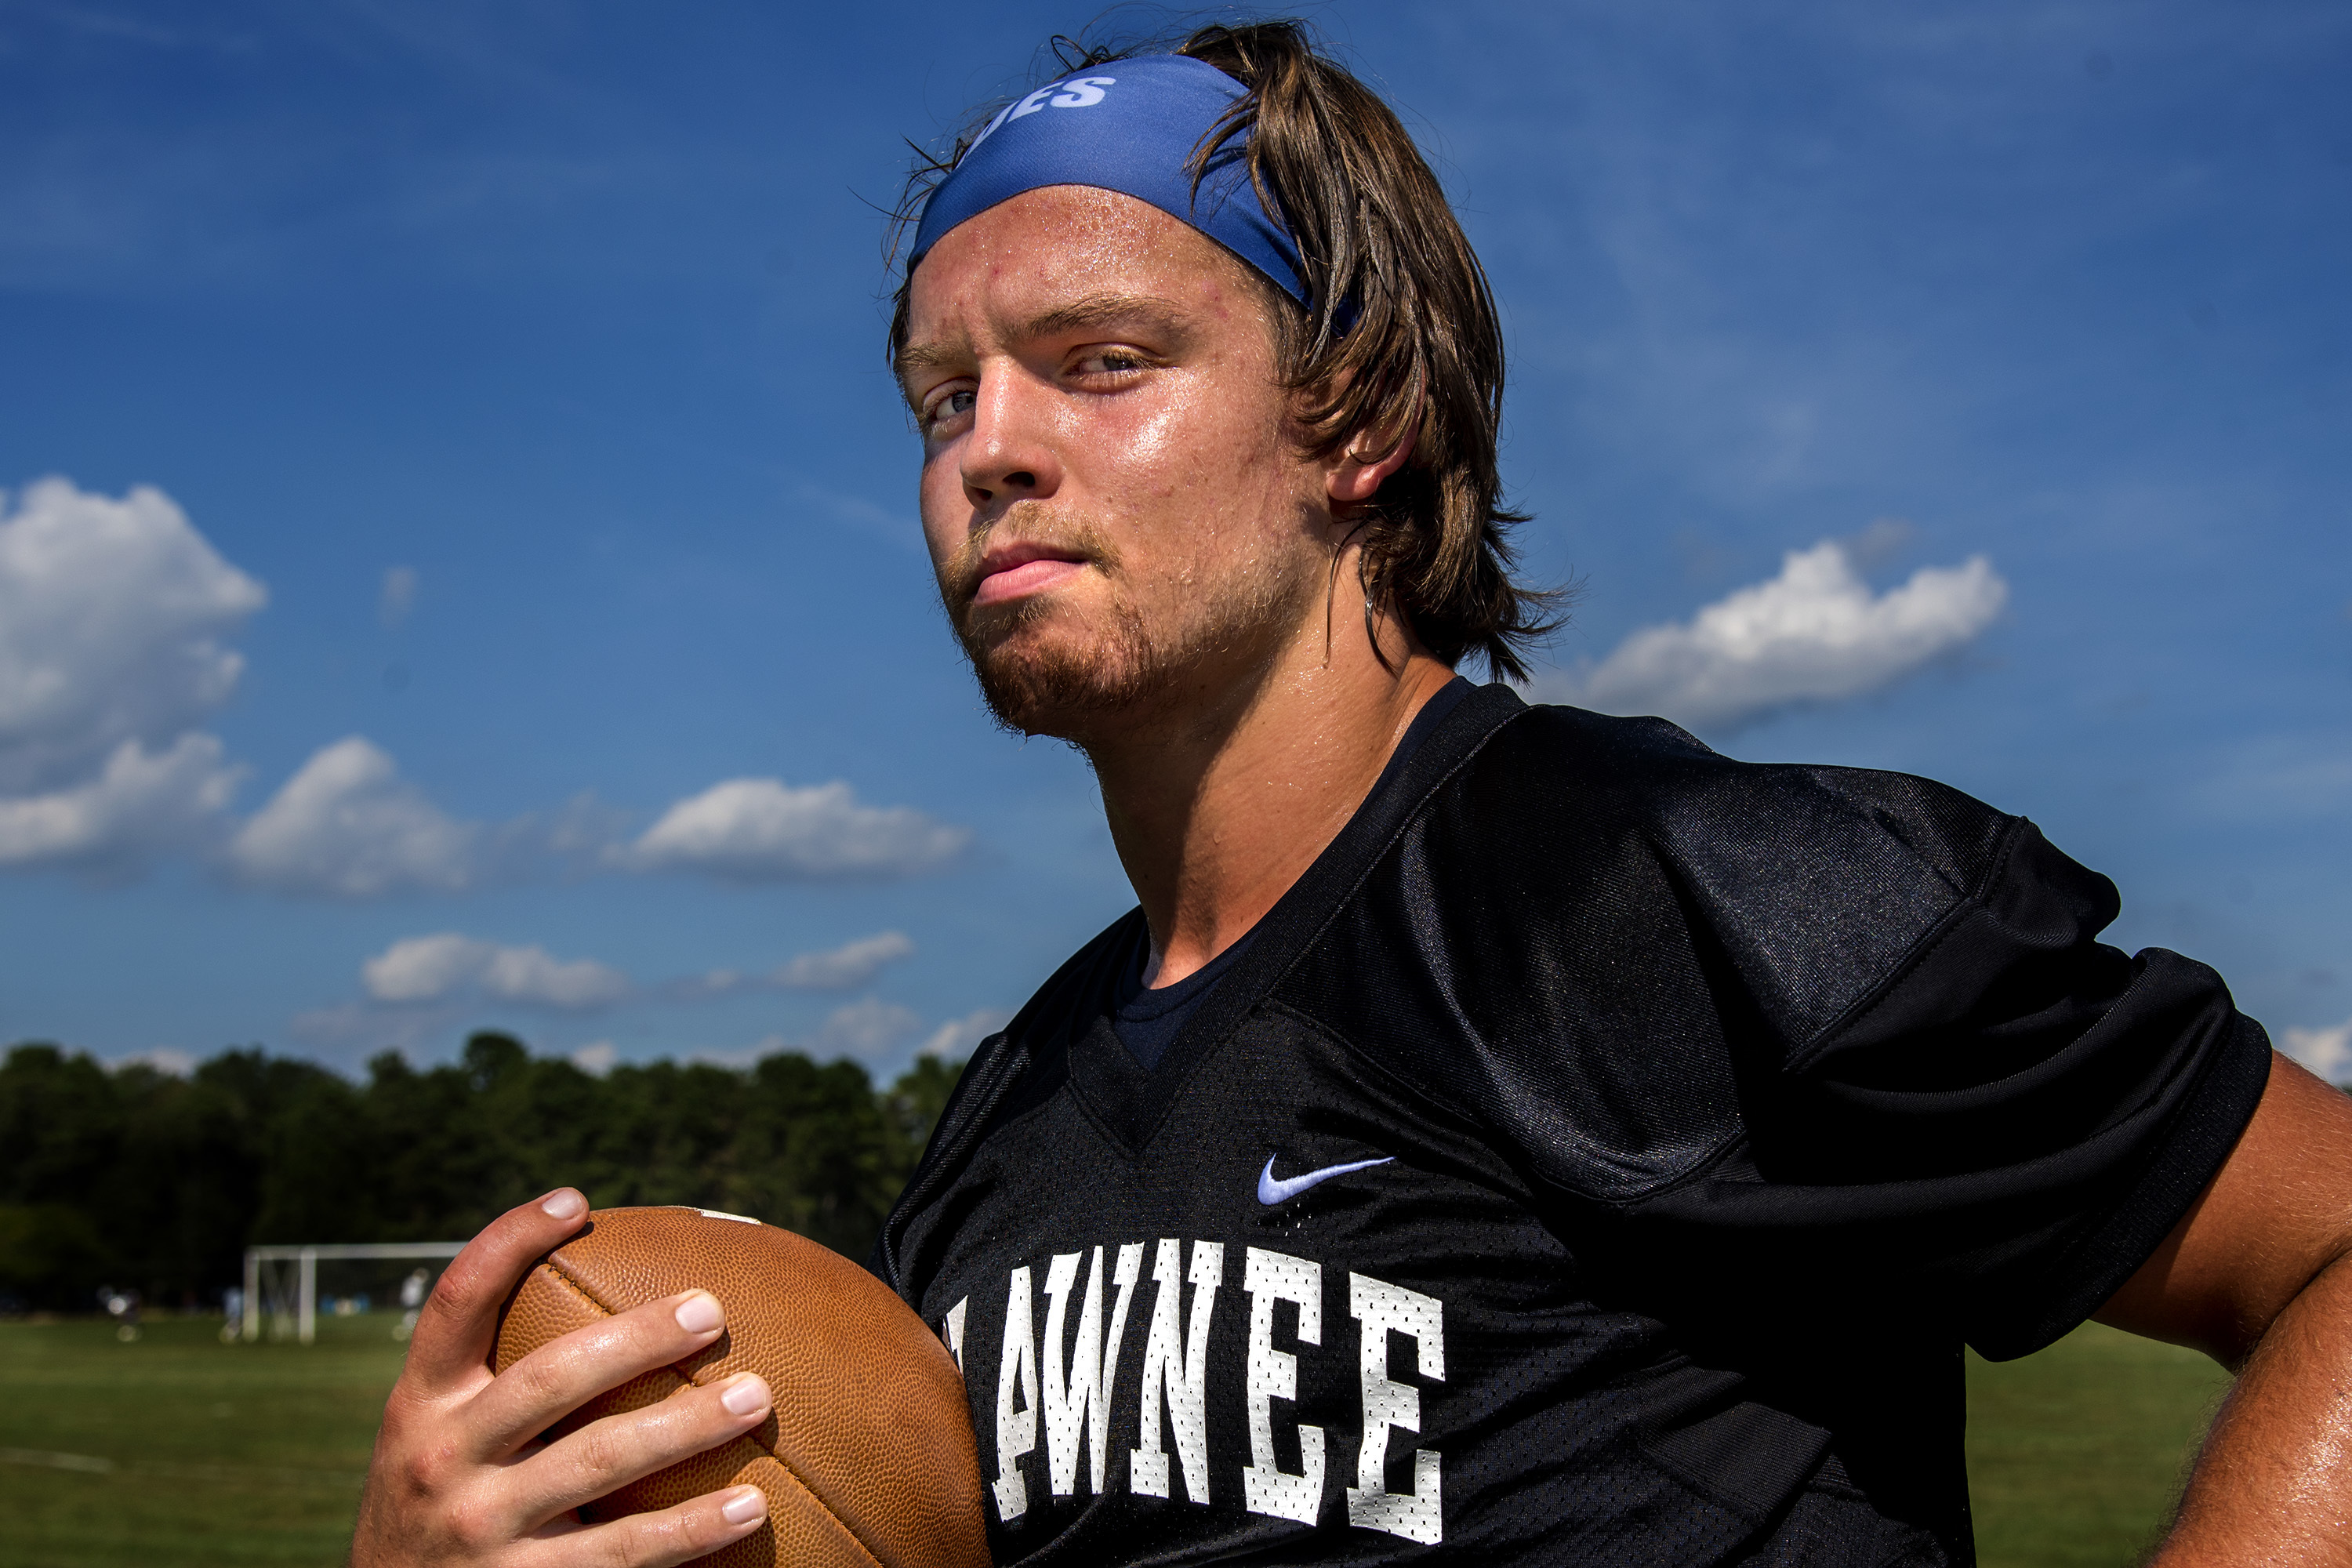 Shawnee´s Joe Dalsey is a versatile athlete who has played several positions during the course of his career.